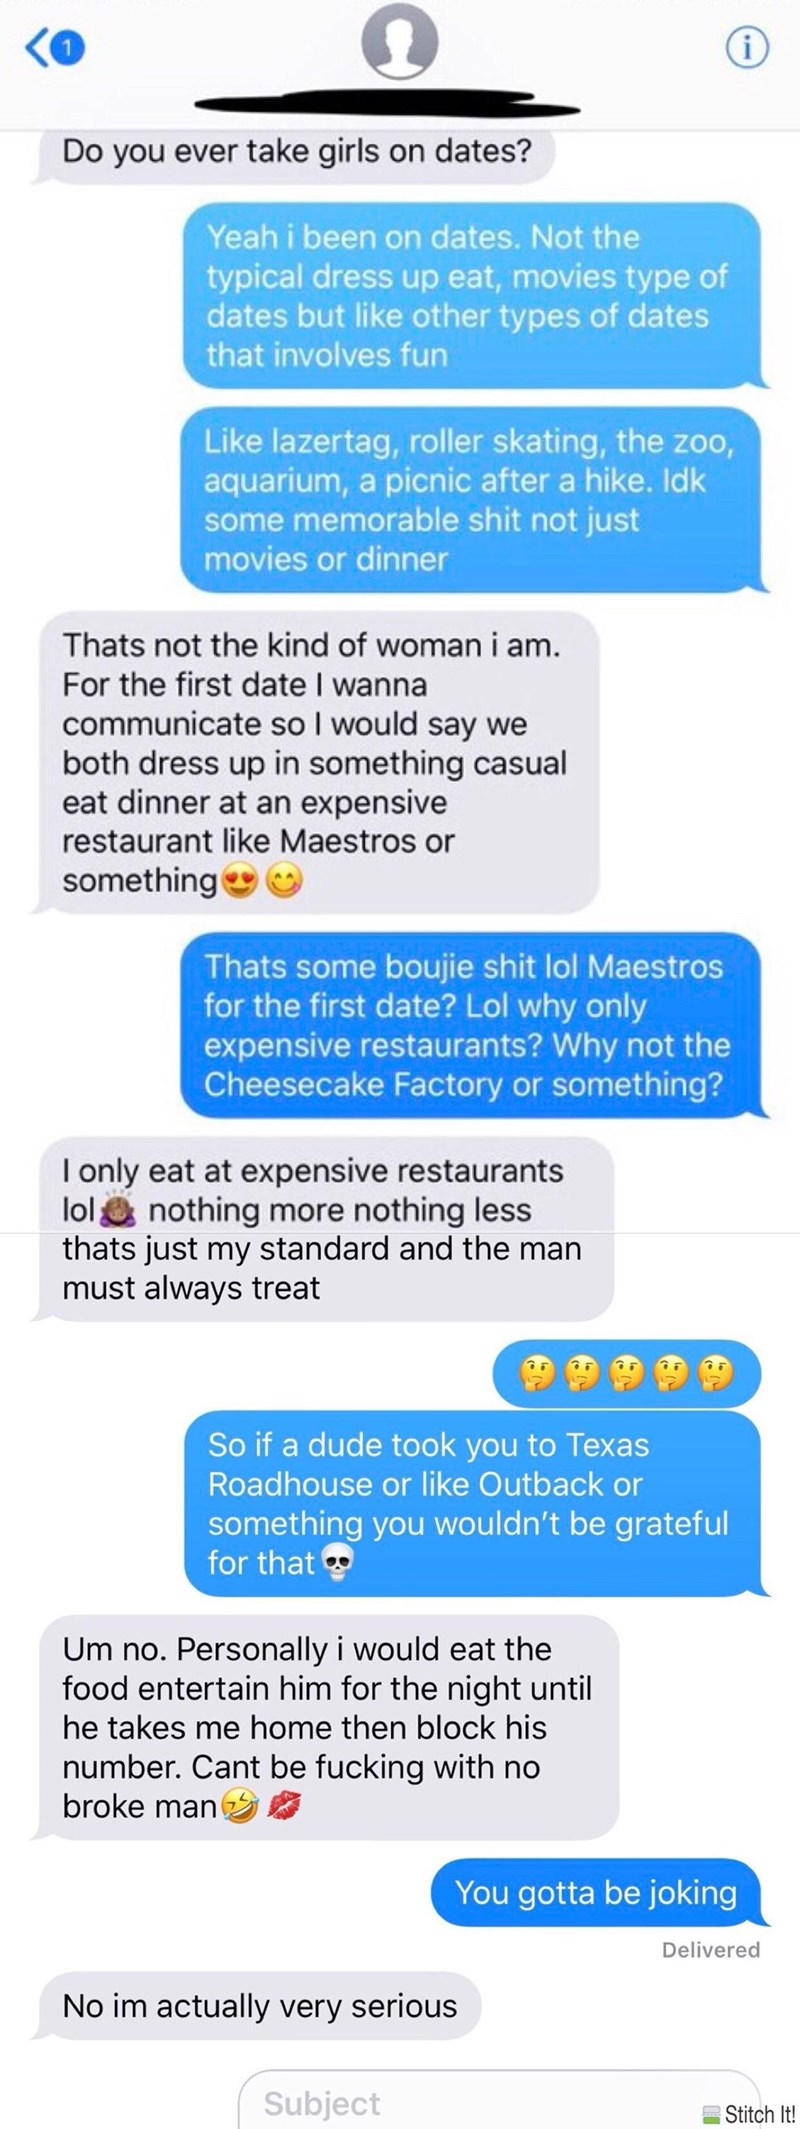 Text - i Do you ever take girls on dates? Yeah i been on dates. Not the typical dress up eat, movies type of dates but like other types of dates that involves fun Like lazertag, roller skating, the zoo, aquarium, a picnic after a hike. Idk some memorable shit not just movies or dinner Thats not the kind of woman i am. For the first date I wanna communicate so I would say we both dress up in something casual eat dinner at an expensive restaurant like Maestros or something Thats some boujie shit l